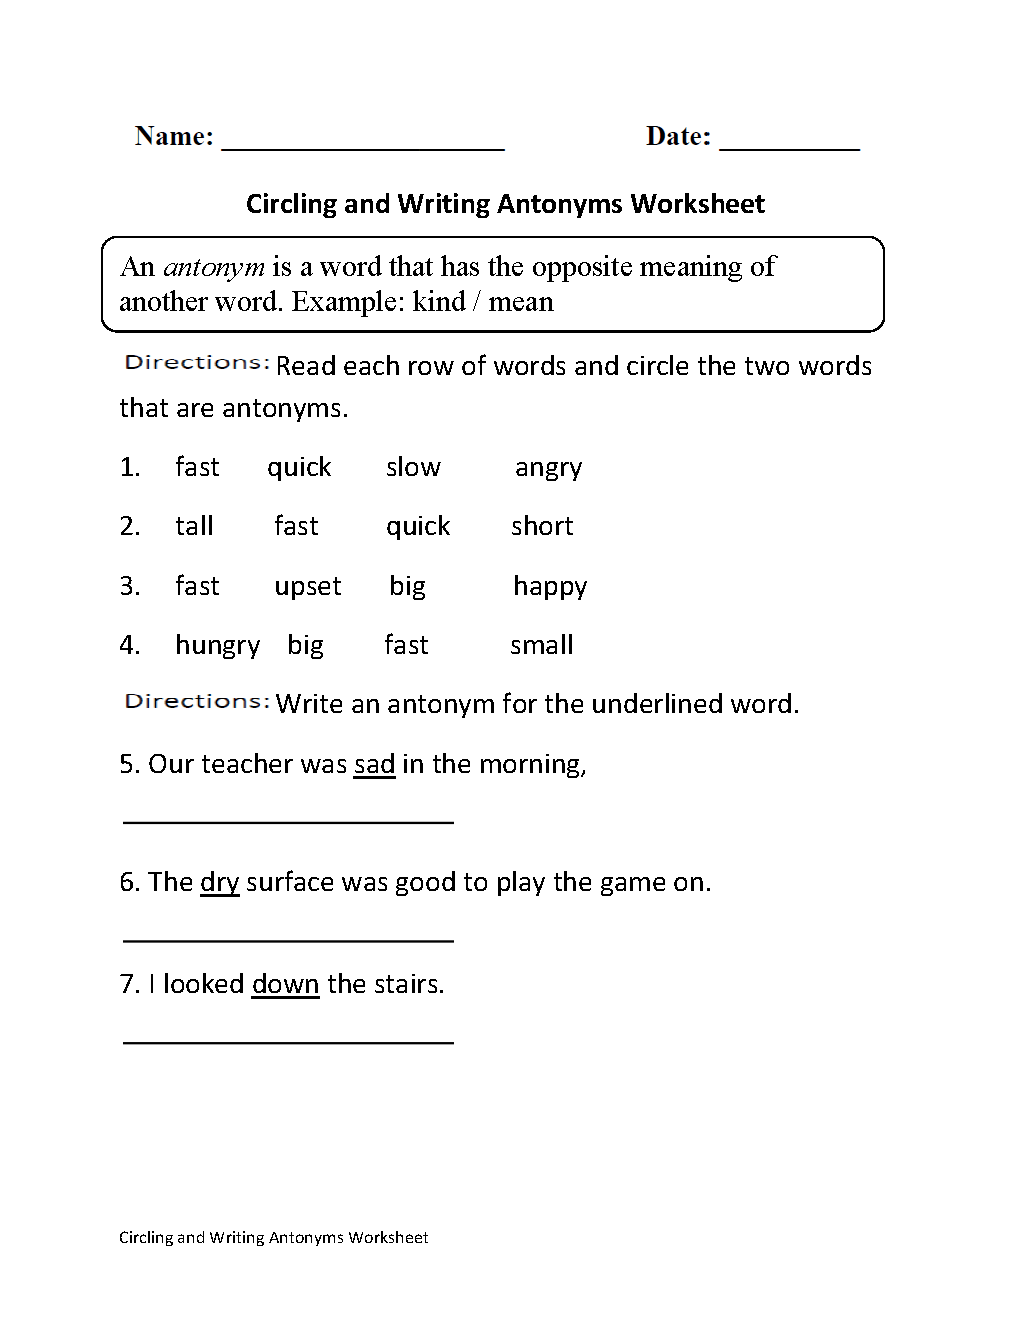 Circling and Writing Antonyms Worksheet